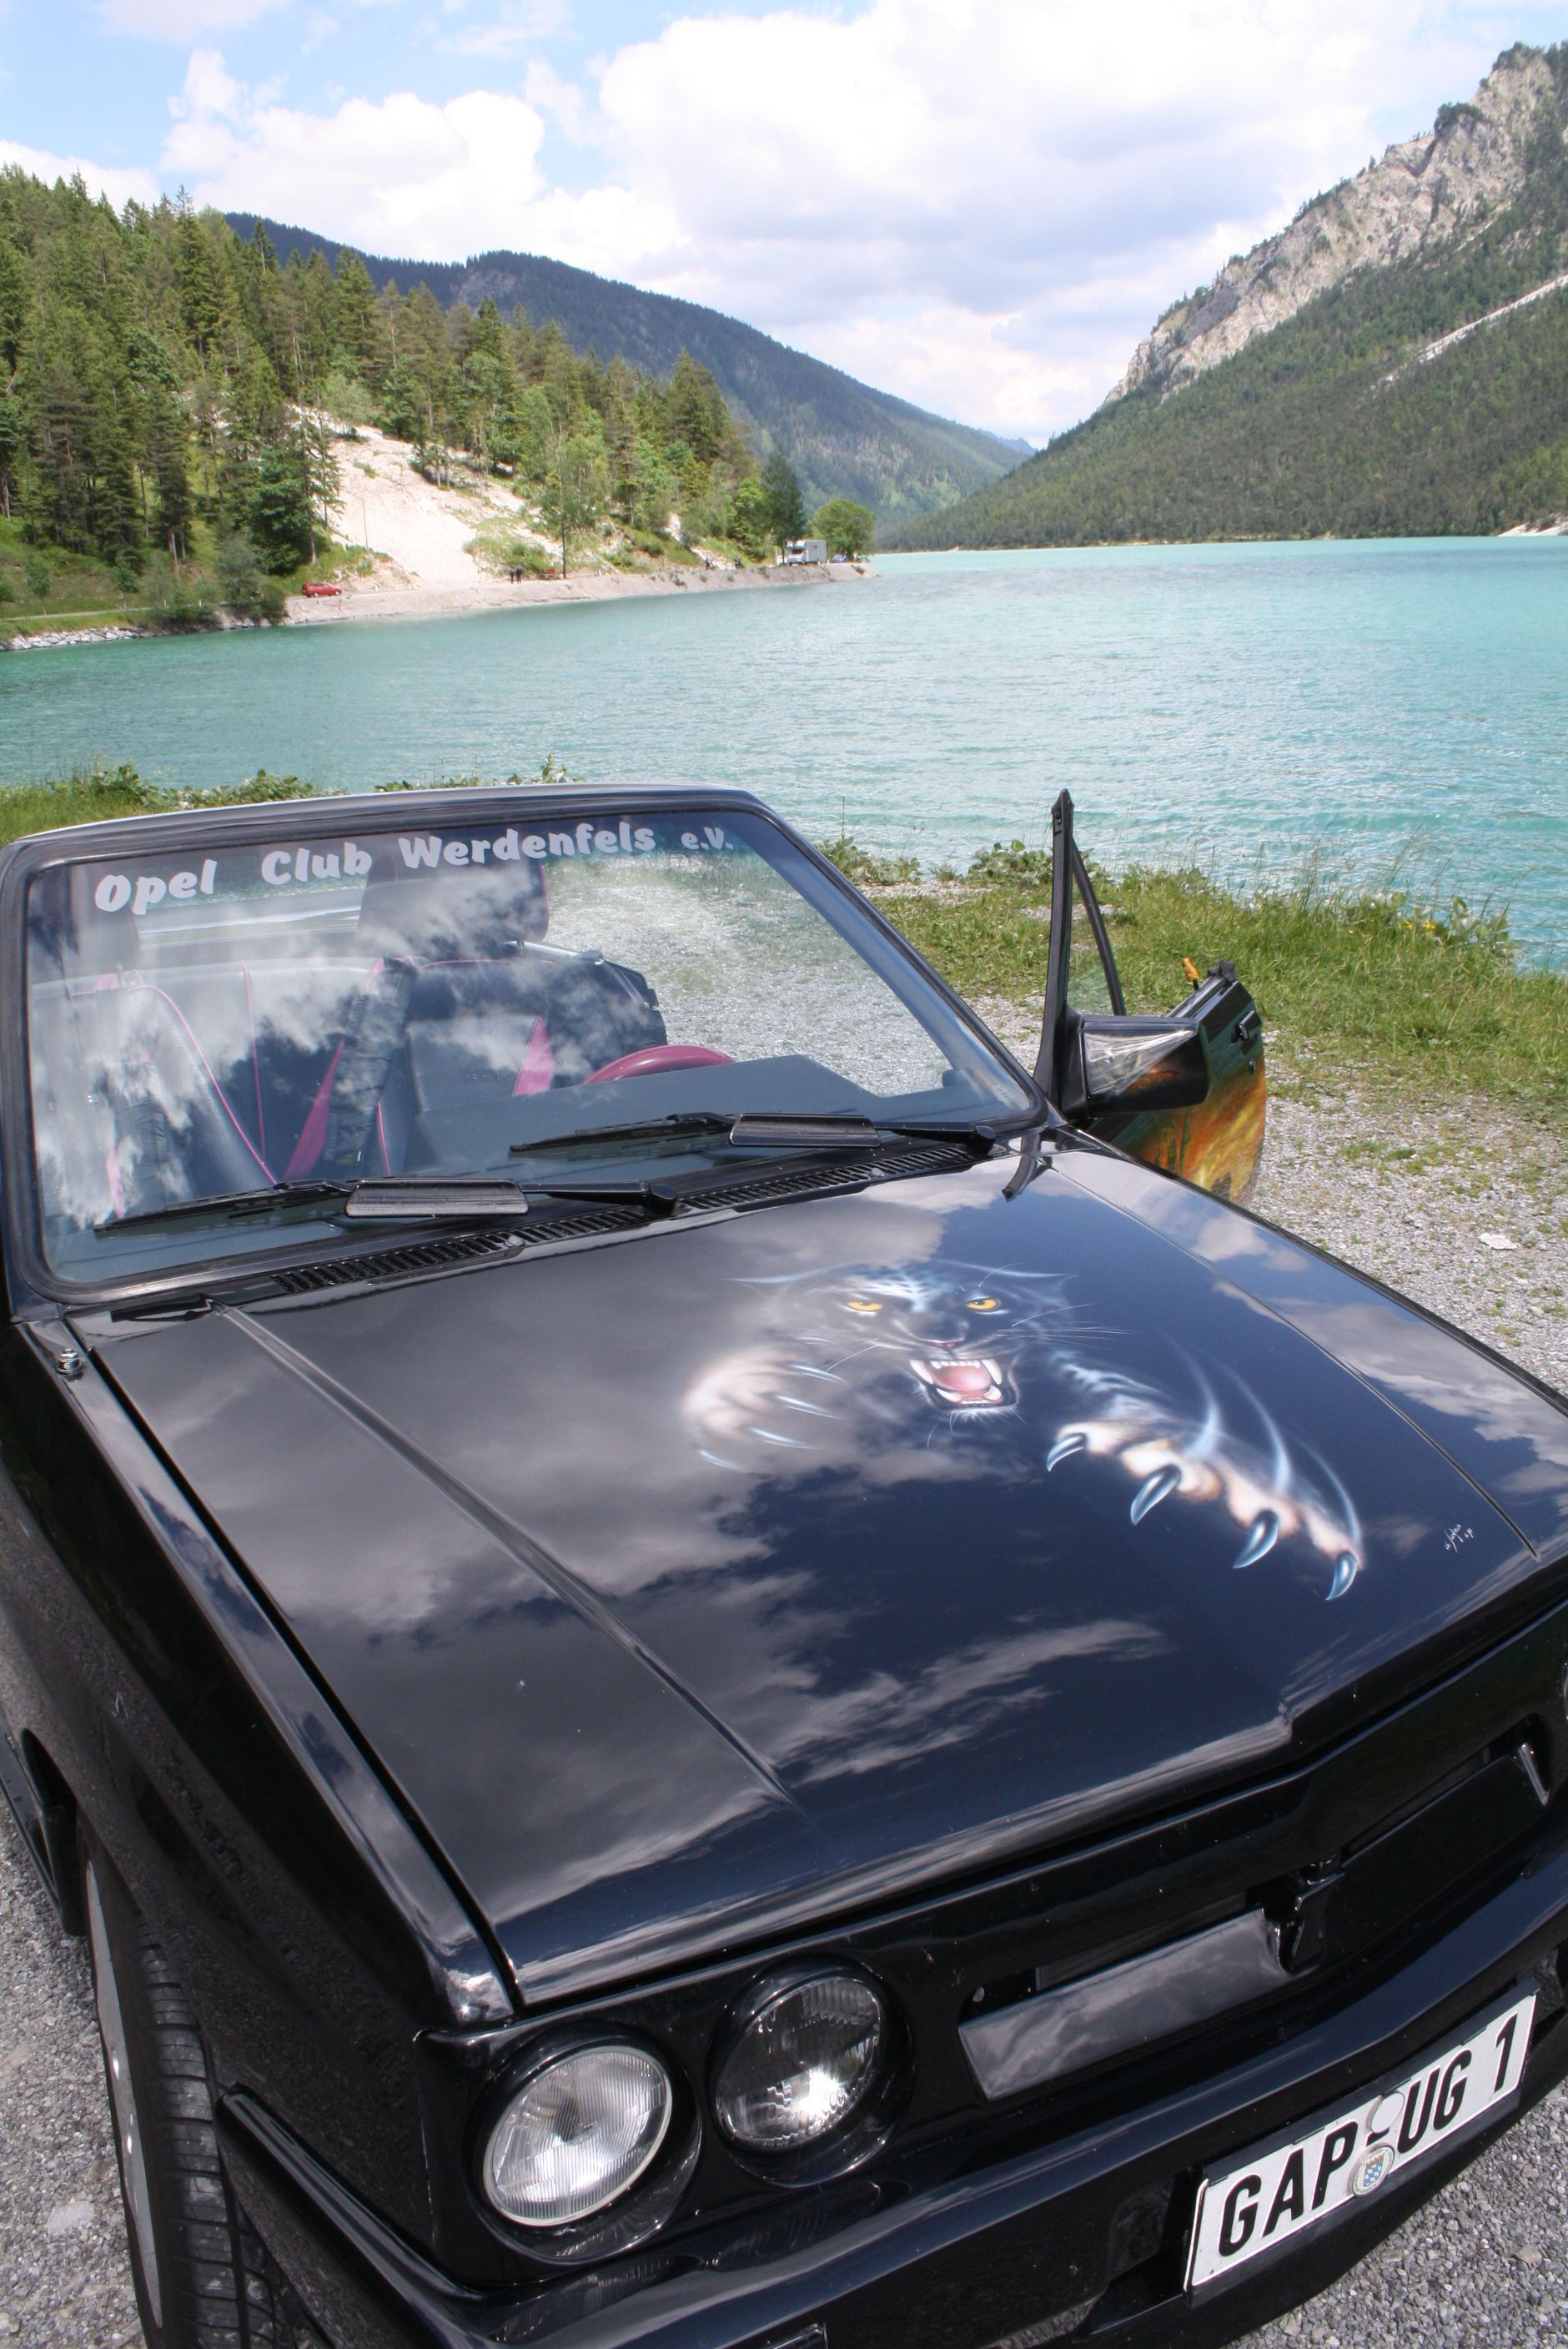 cabrio tour mit dem k nig der l wen entlang am plansee. Black Bedroom Furniture Sets. Home Design Ideas